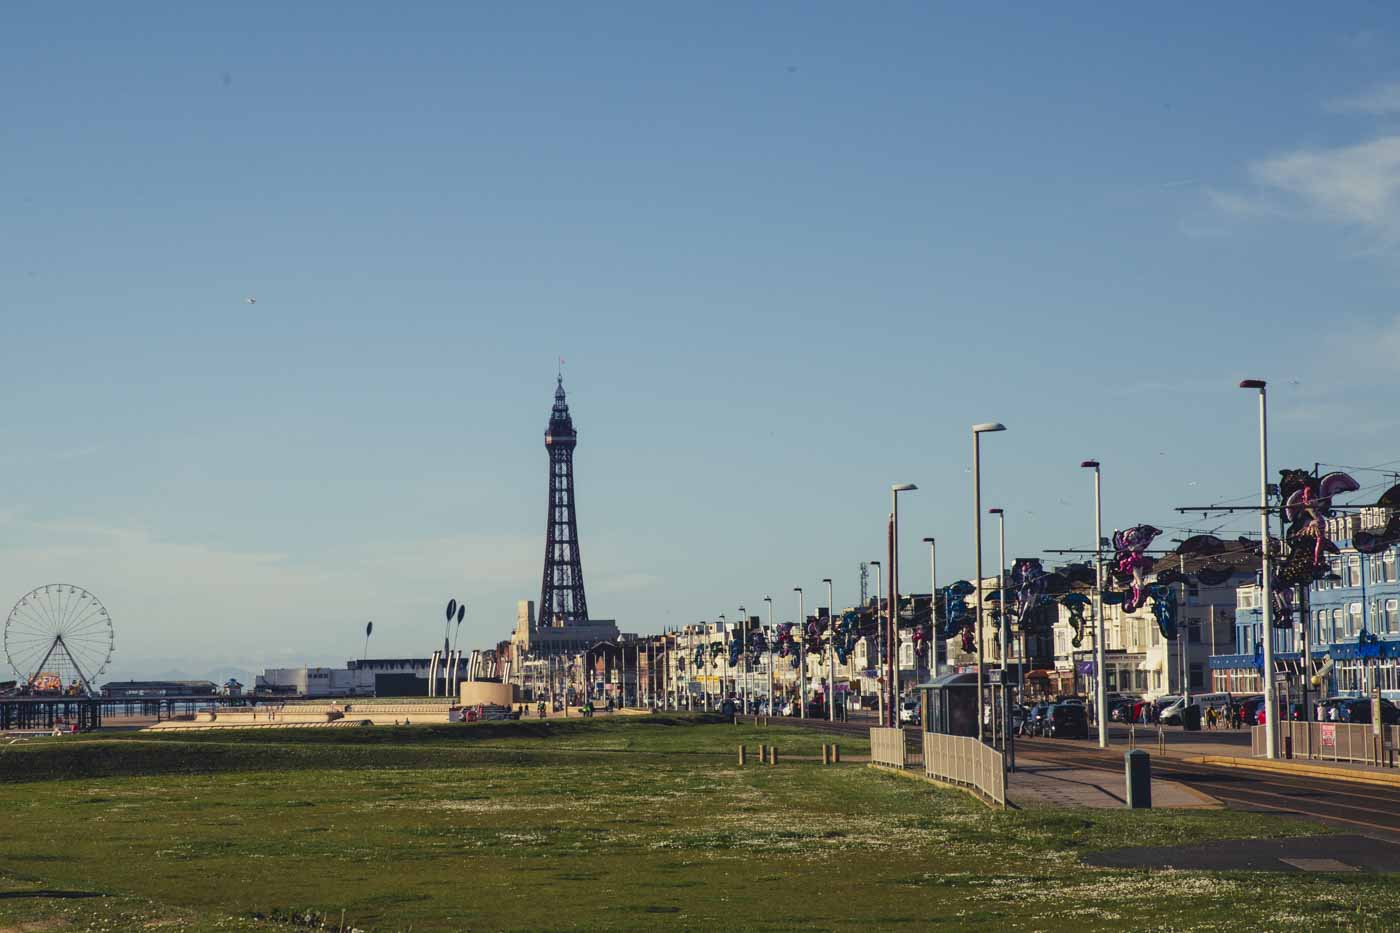 blackpool tower, south beach